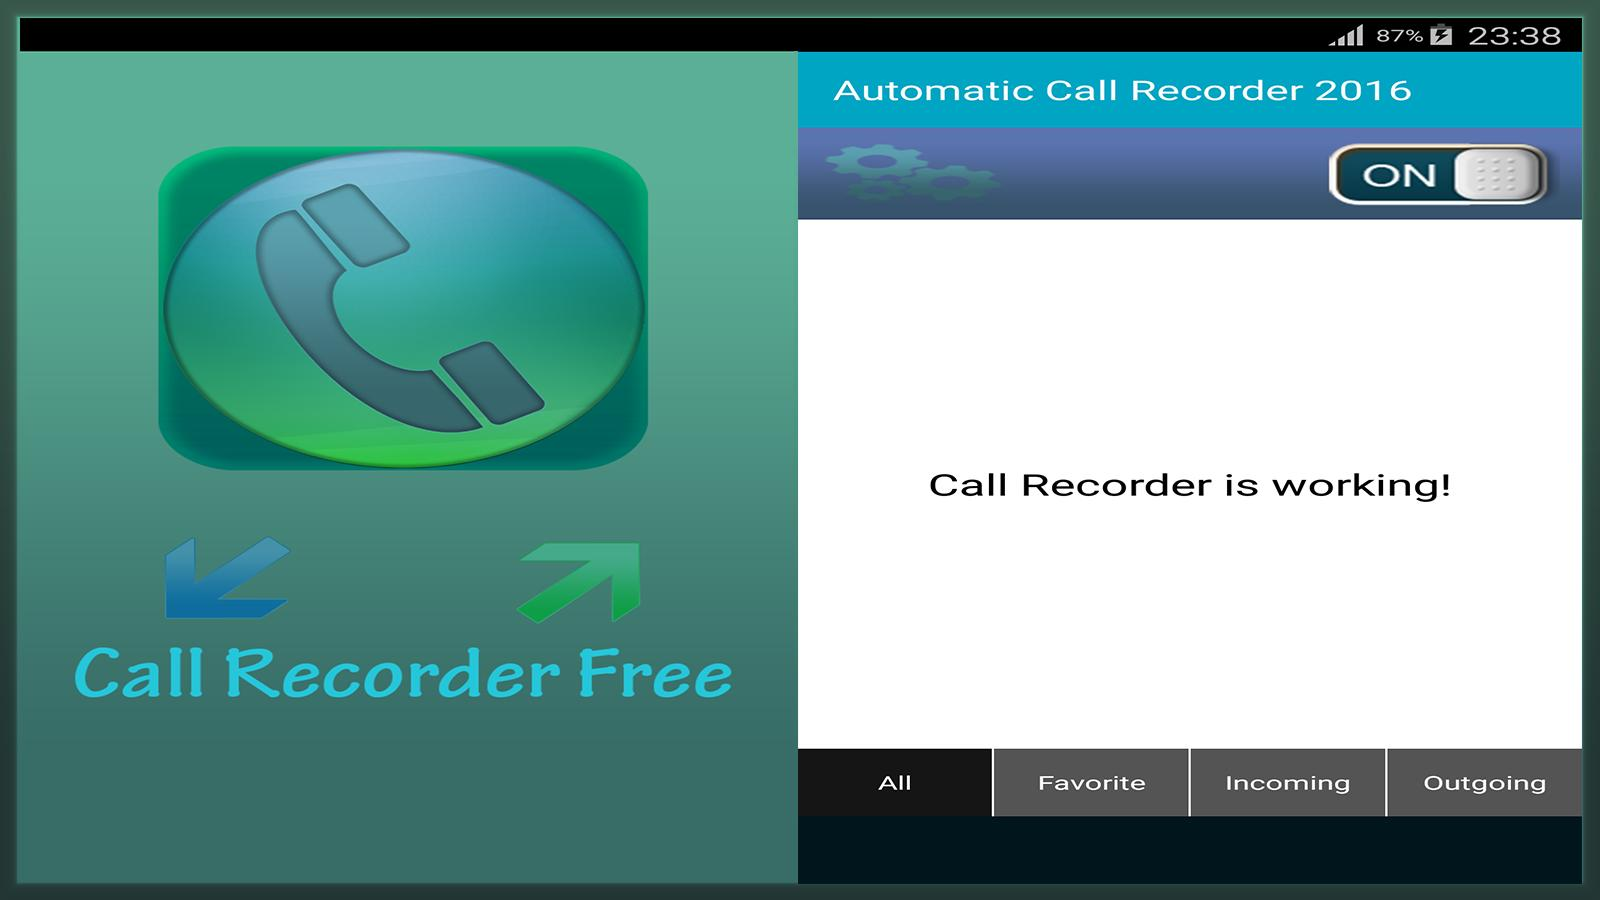 Automatic Call Recorder 2016 for Android - APK Download